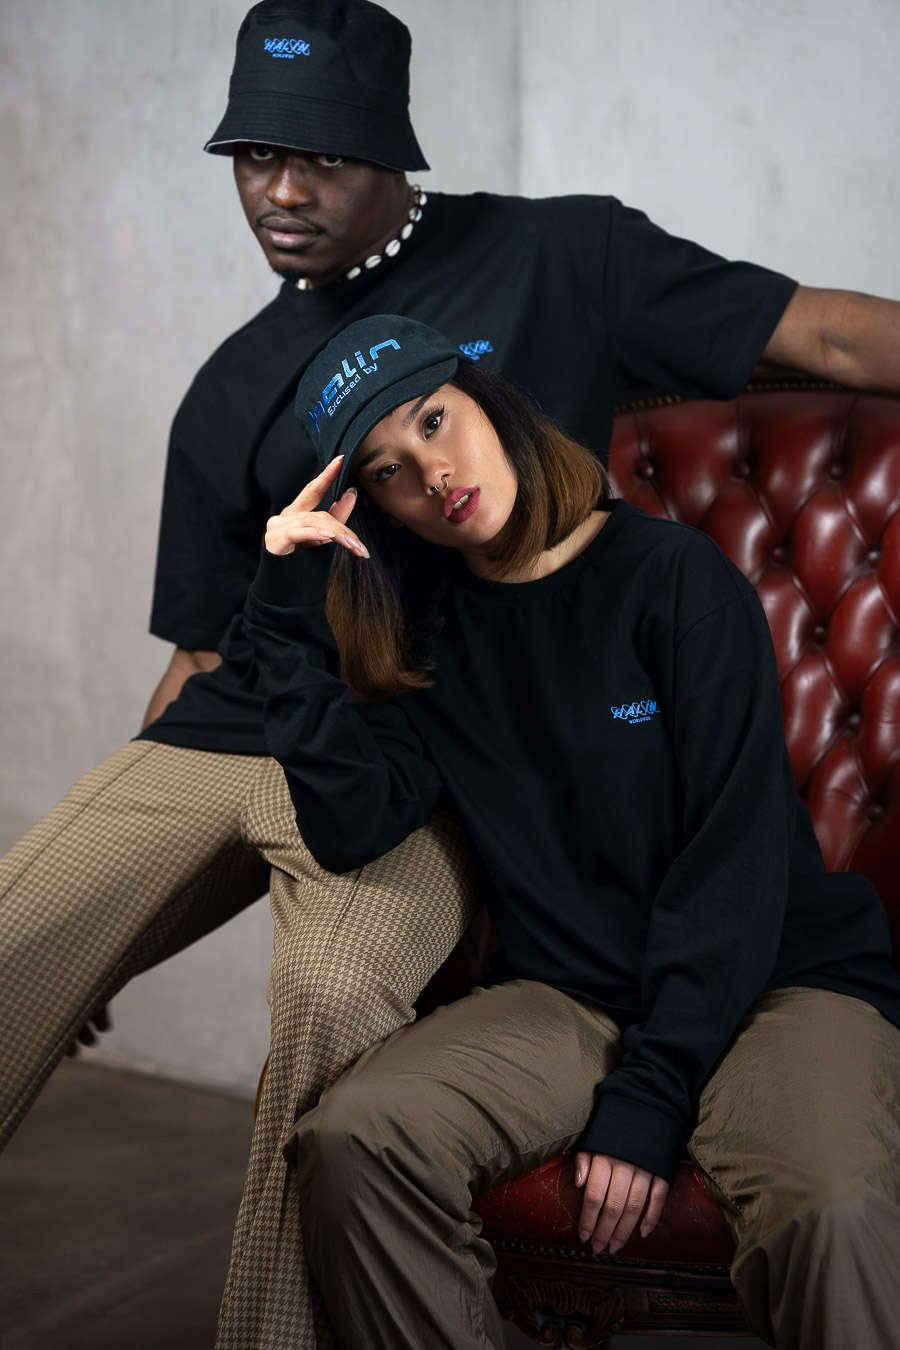 Female and male model wearing Halin Worldwide streetwear look from the Not Today collection.